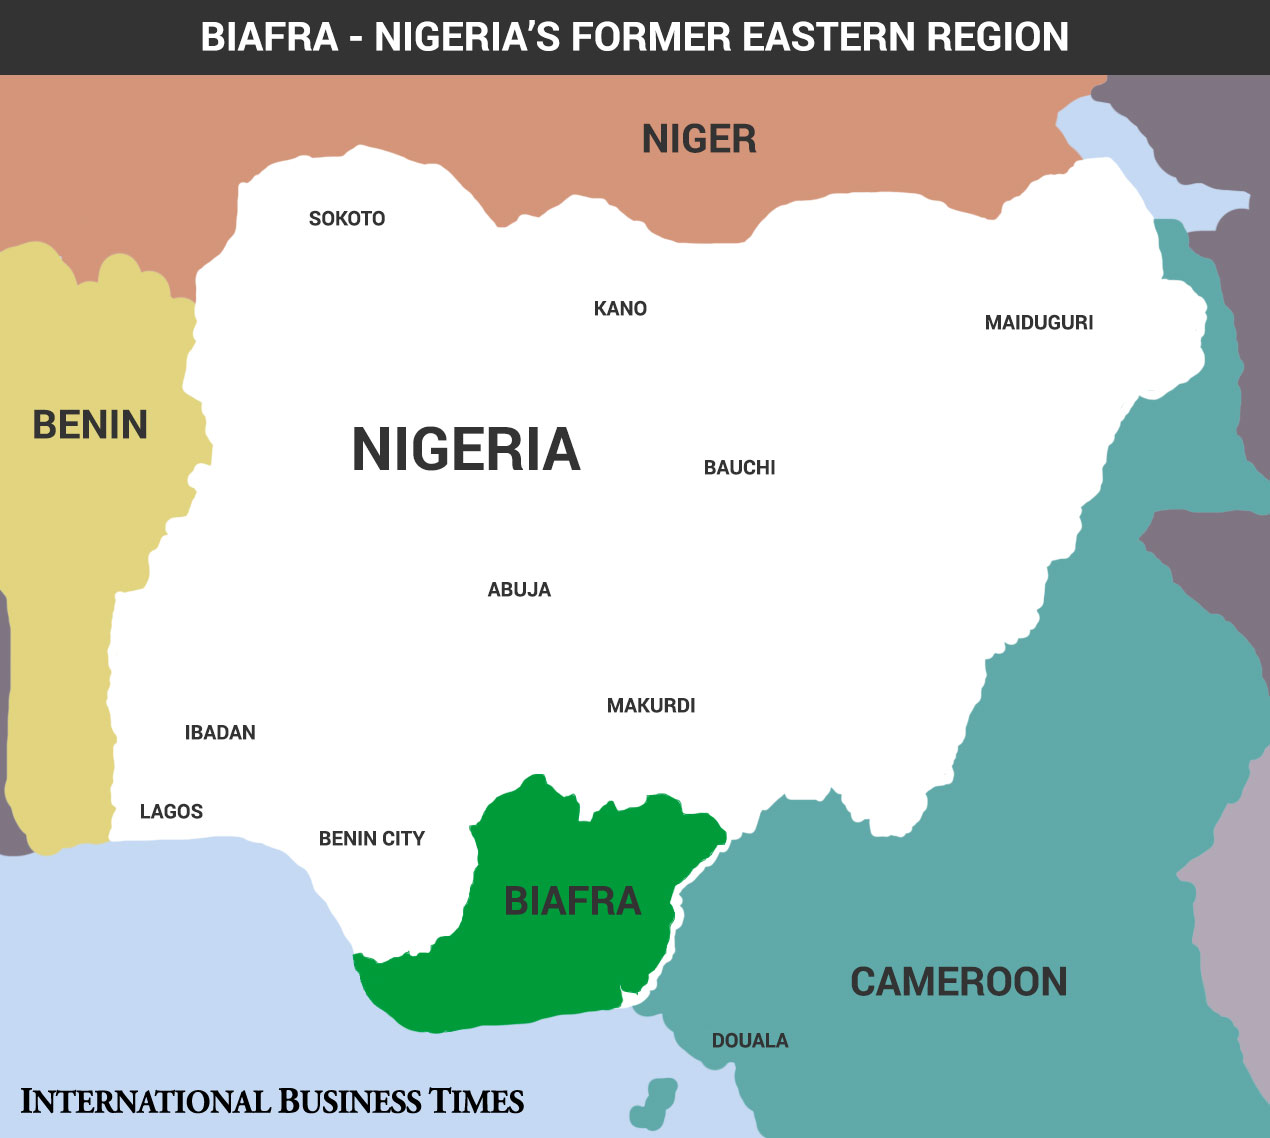 Biafra map